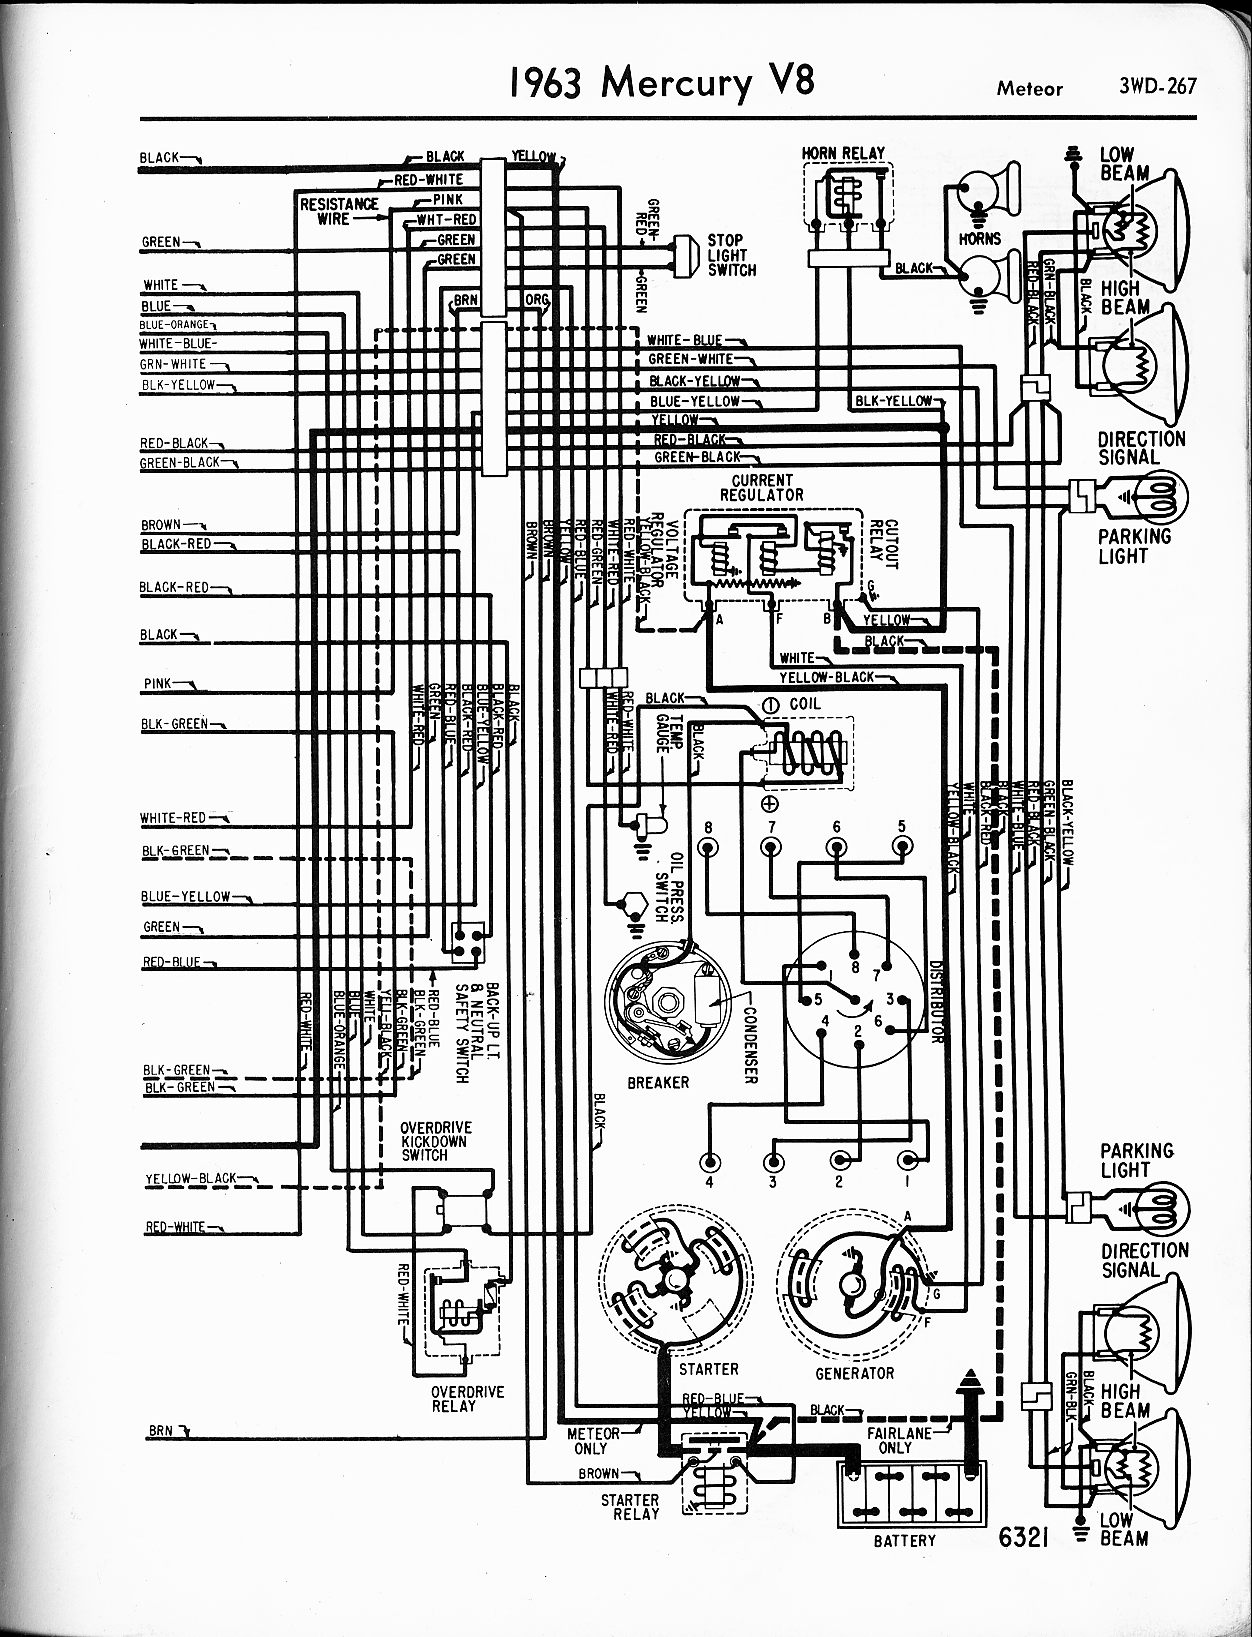 1957 Chevy Wiring Schematics Manual Of Diagram 57 Mercury Diagrams The Old Car Project Truck